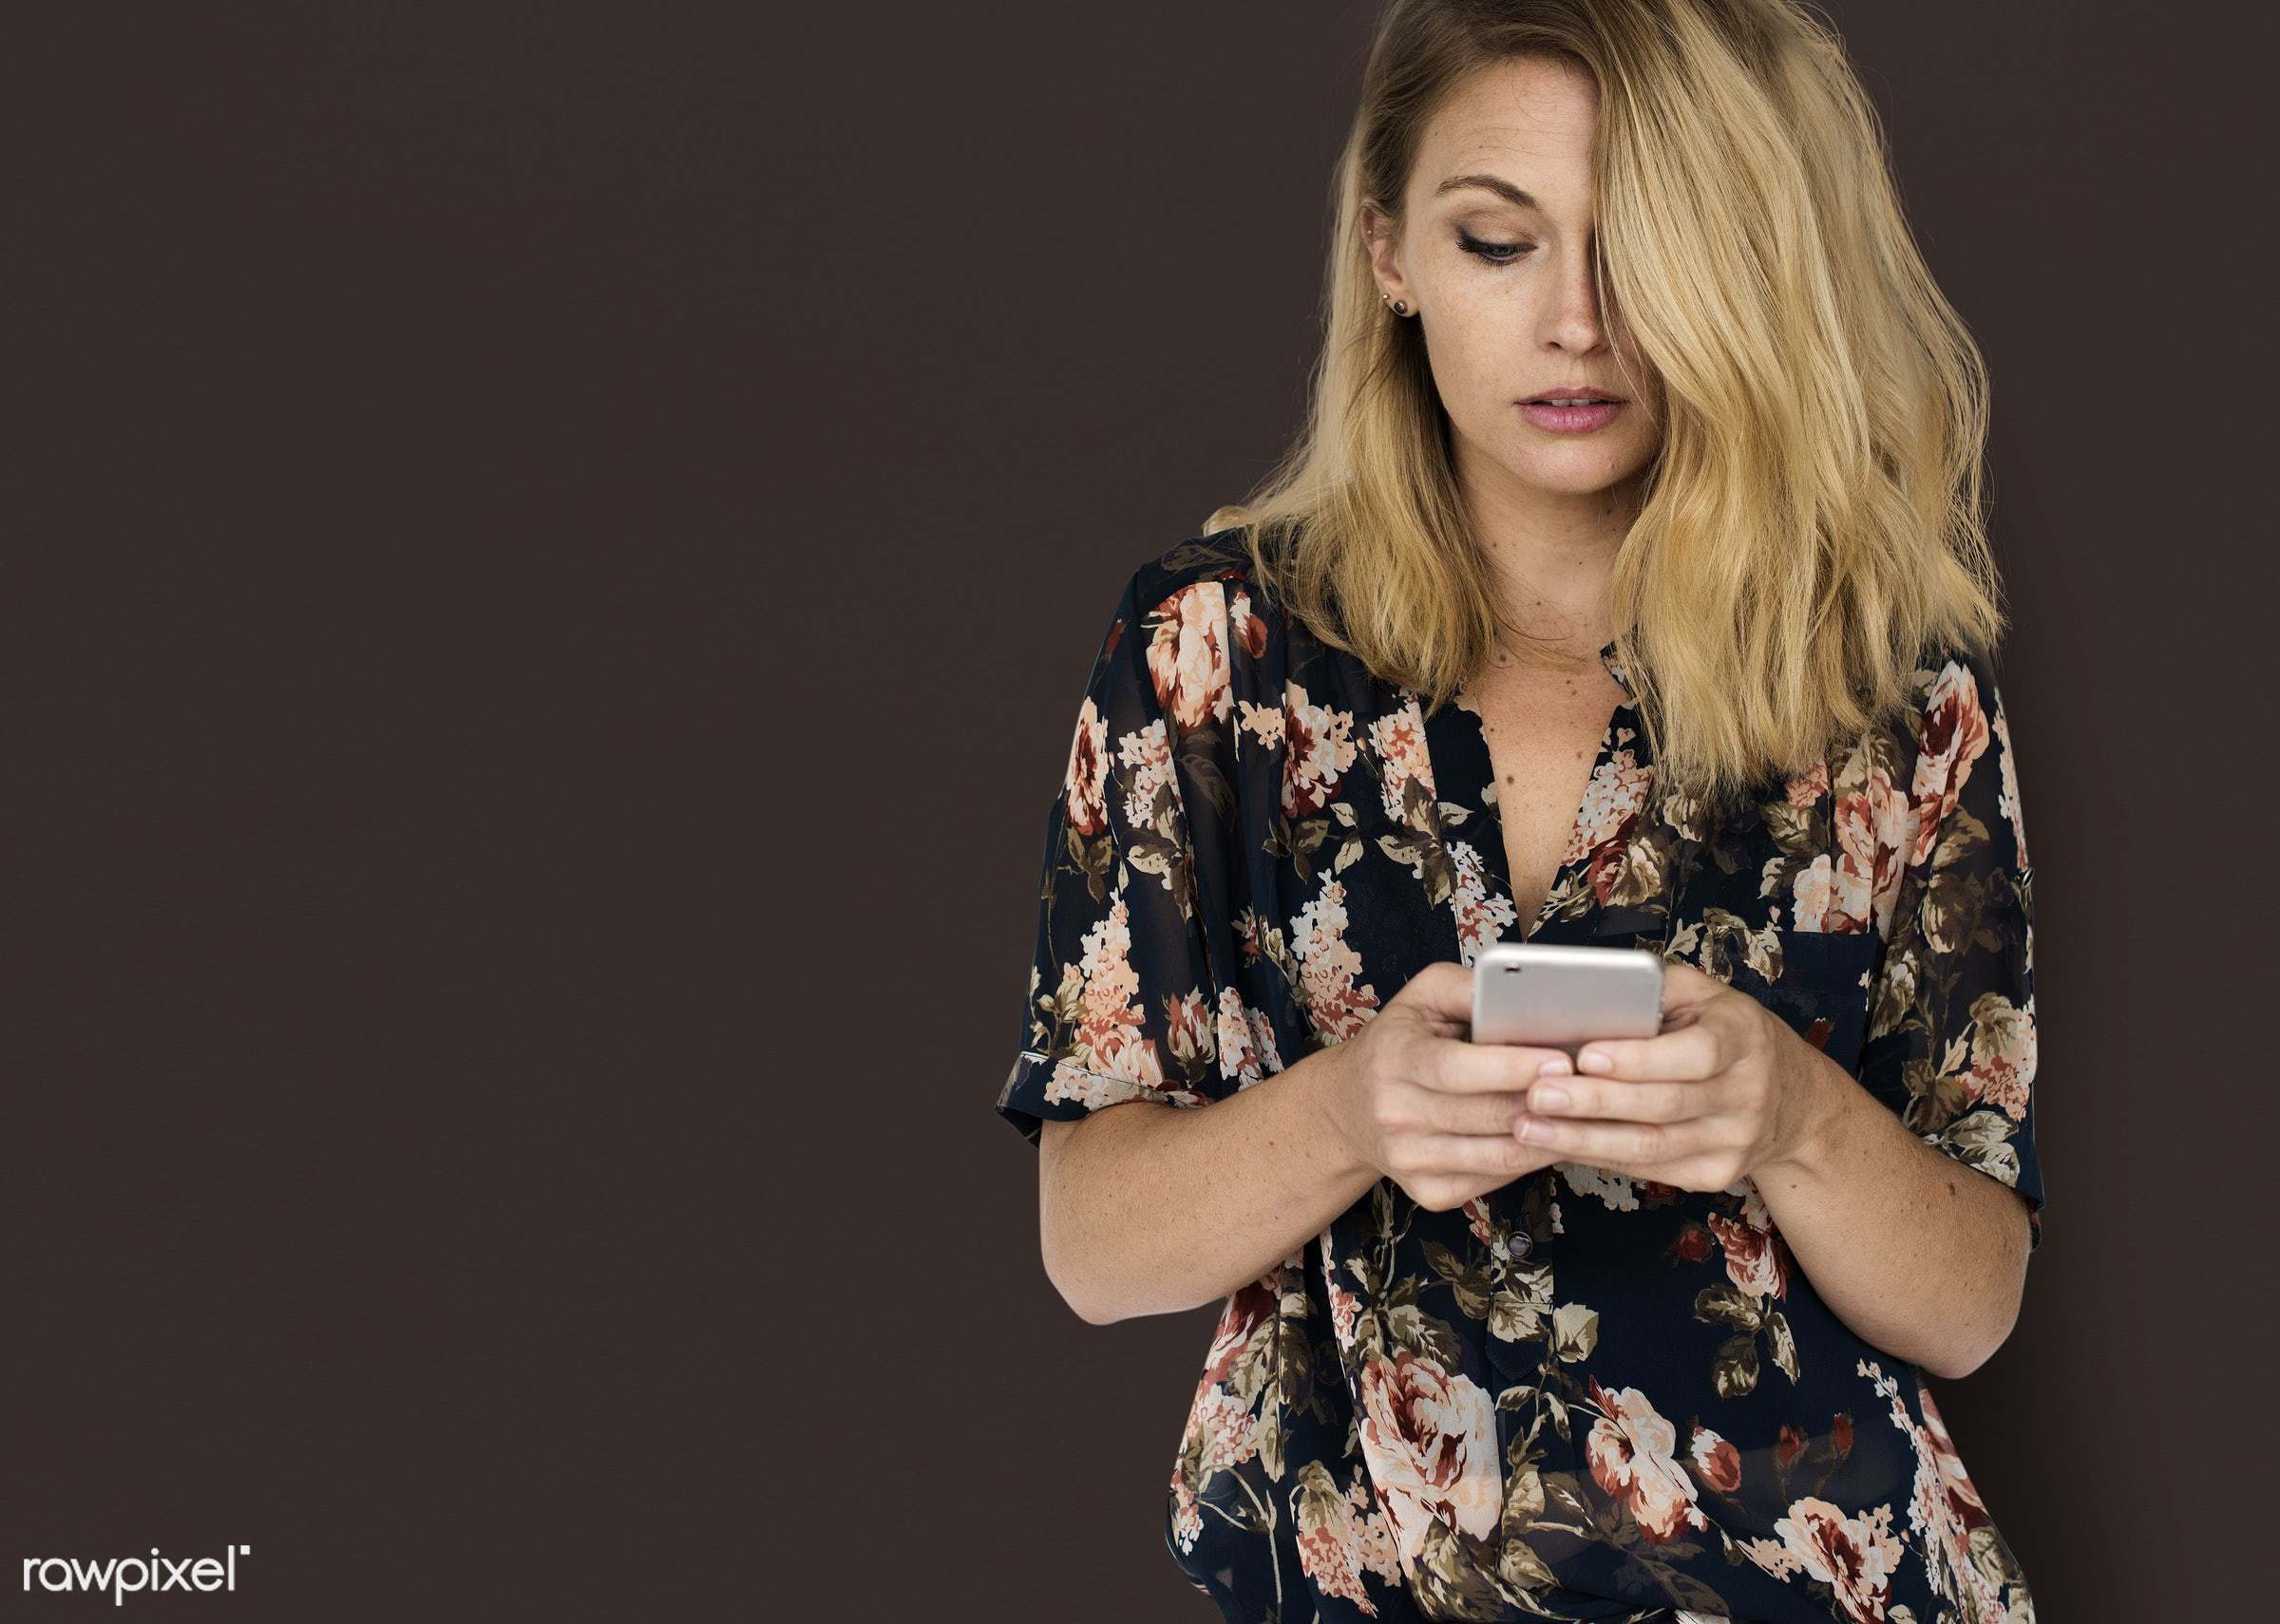 background, beauty, browsing, brunette, casual, caucasian, charming, chatting, communication, connection, emotion,...